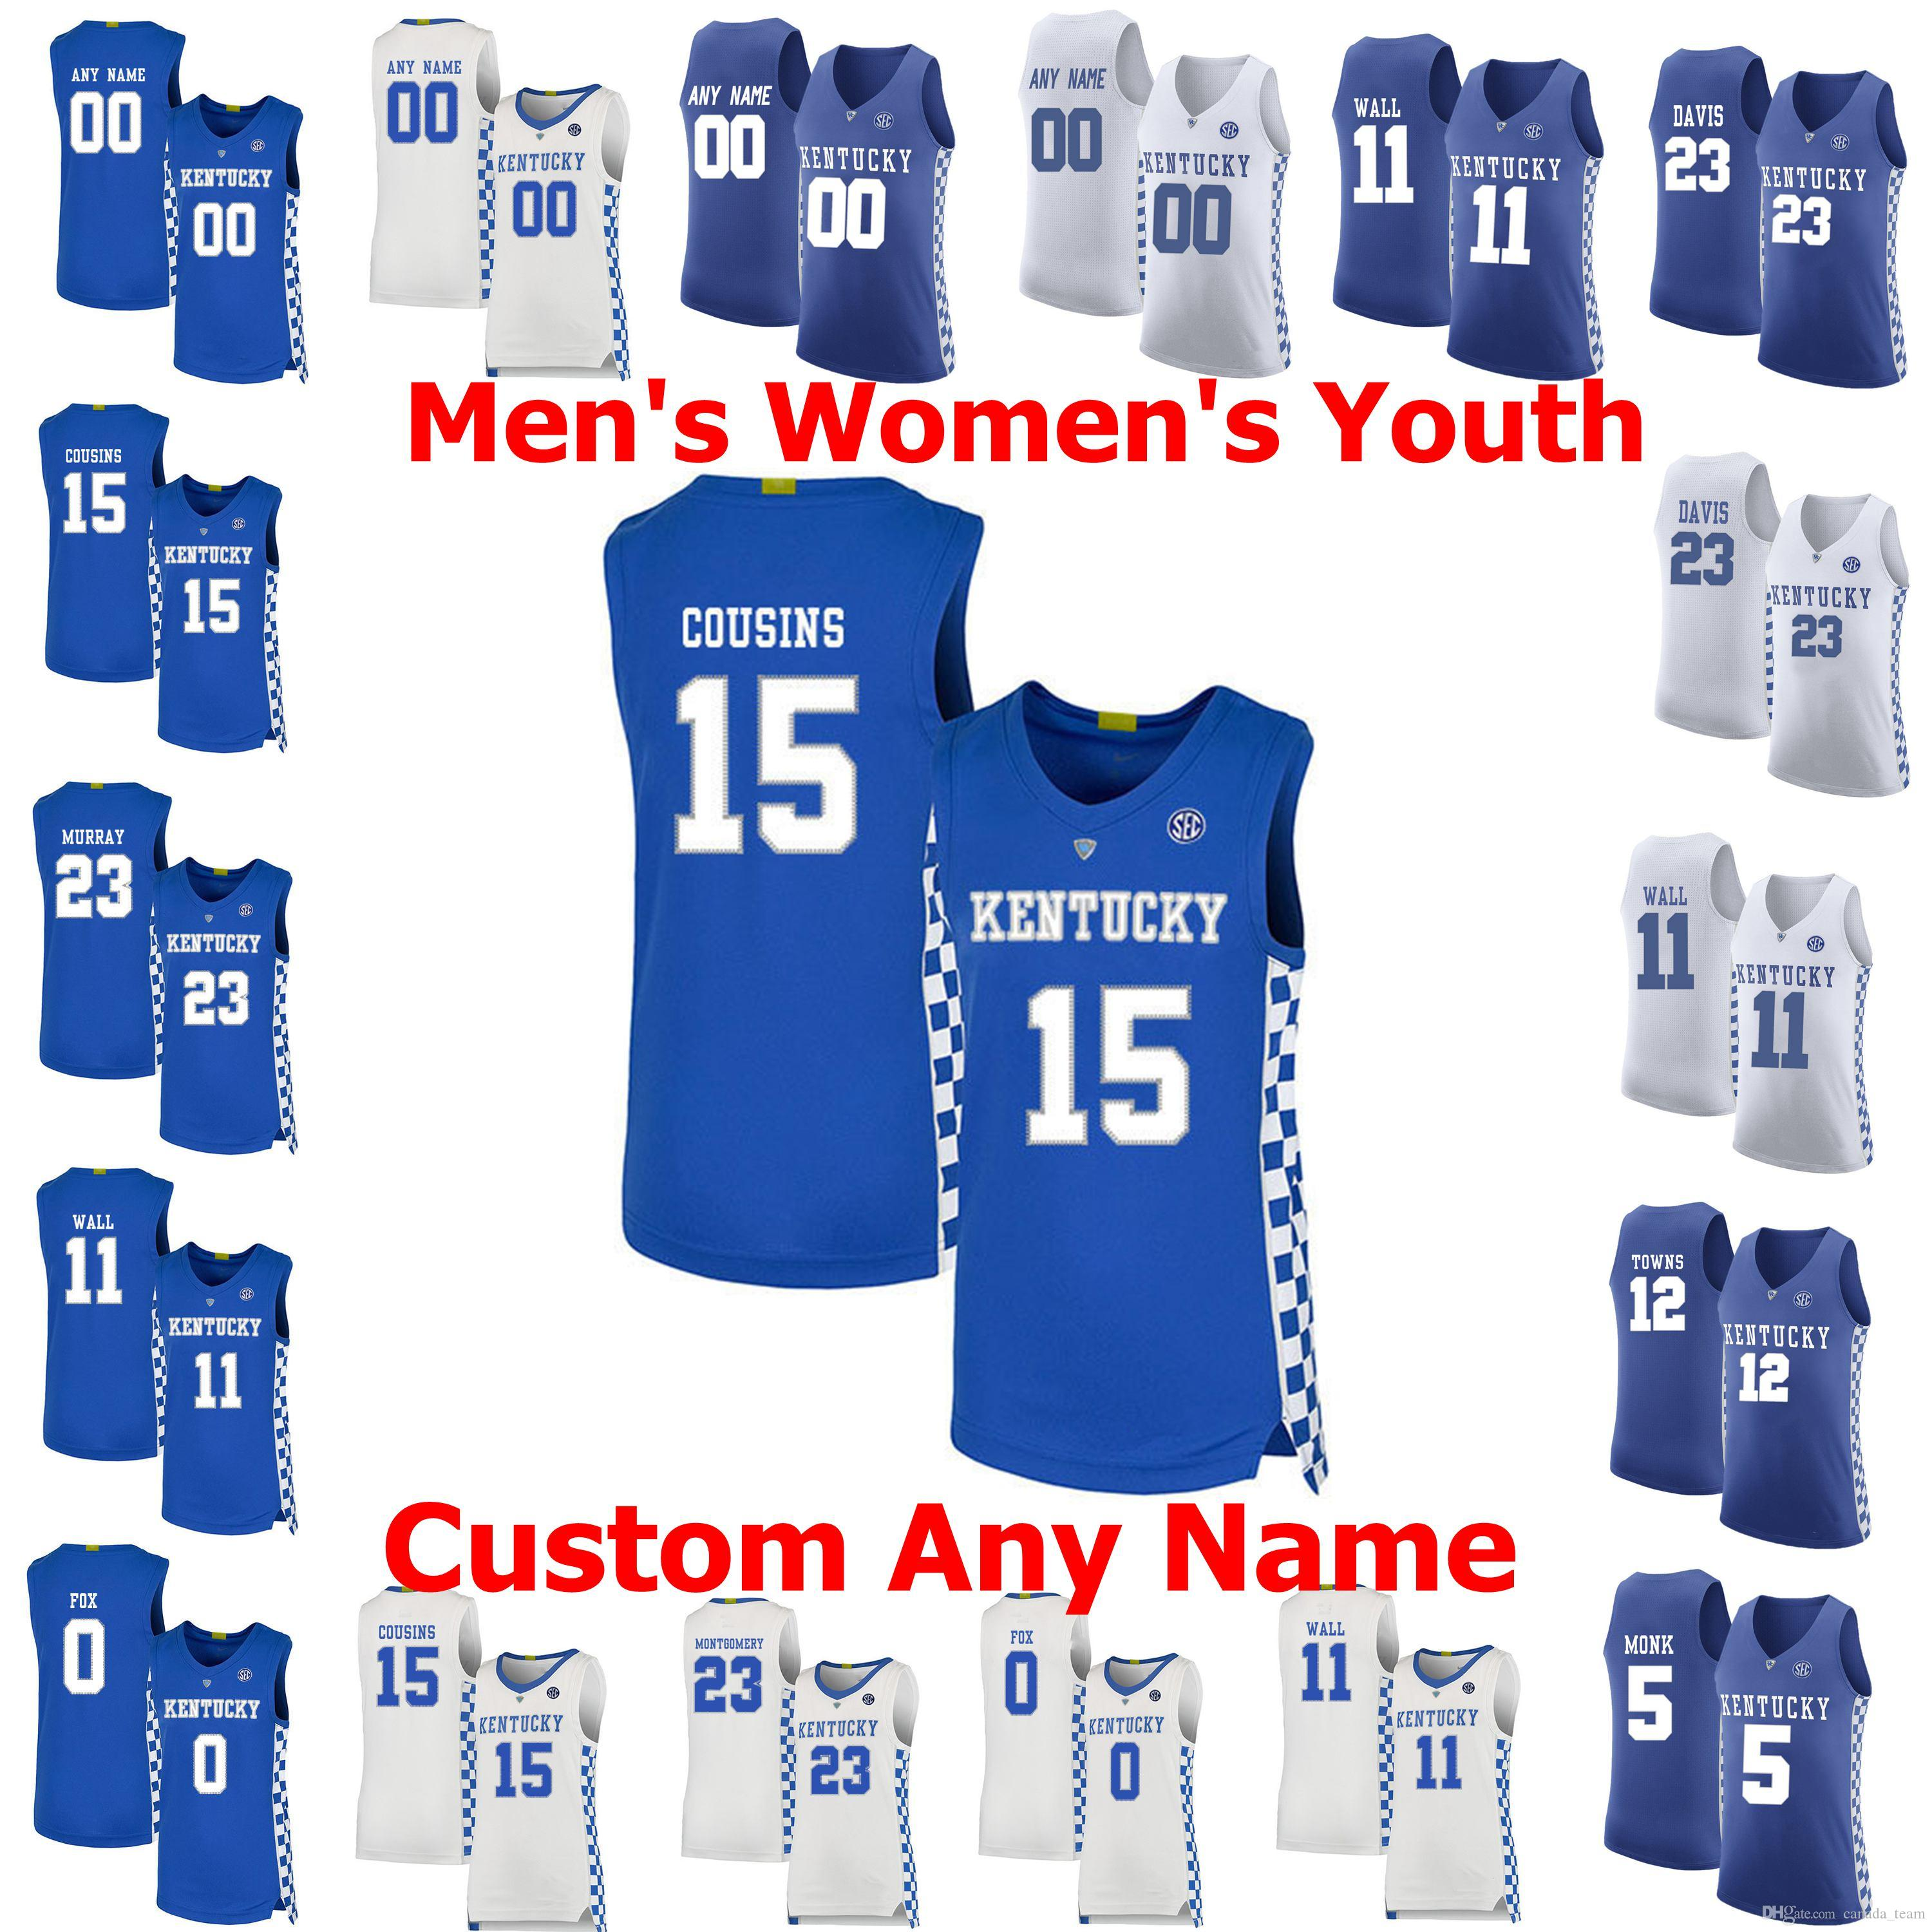 2020 Kentucky Wildcats College Basketball Jerseys 3 Tyrese Maxey Jersey 5 Immanuel Quickley 10 Johnny Juzang 23 E J Montgomery Stitched Custom From Canada Team 12 98 Dhgate Com